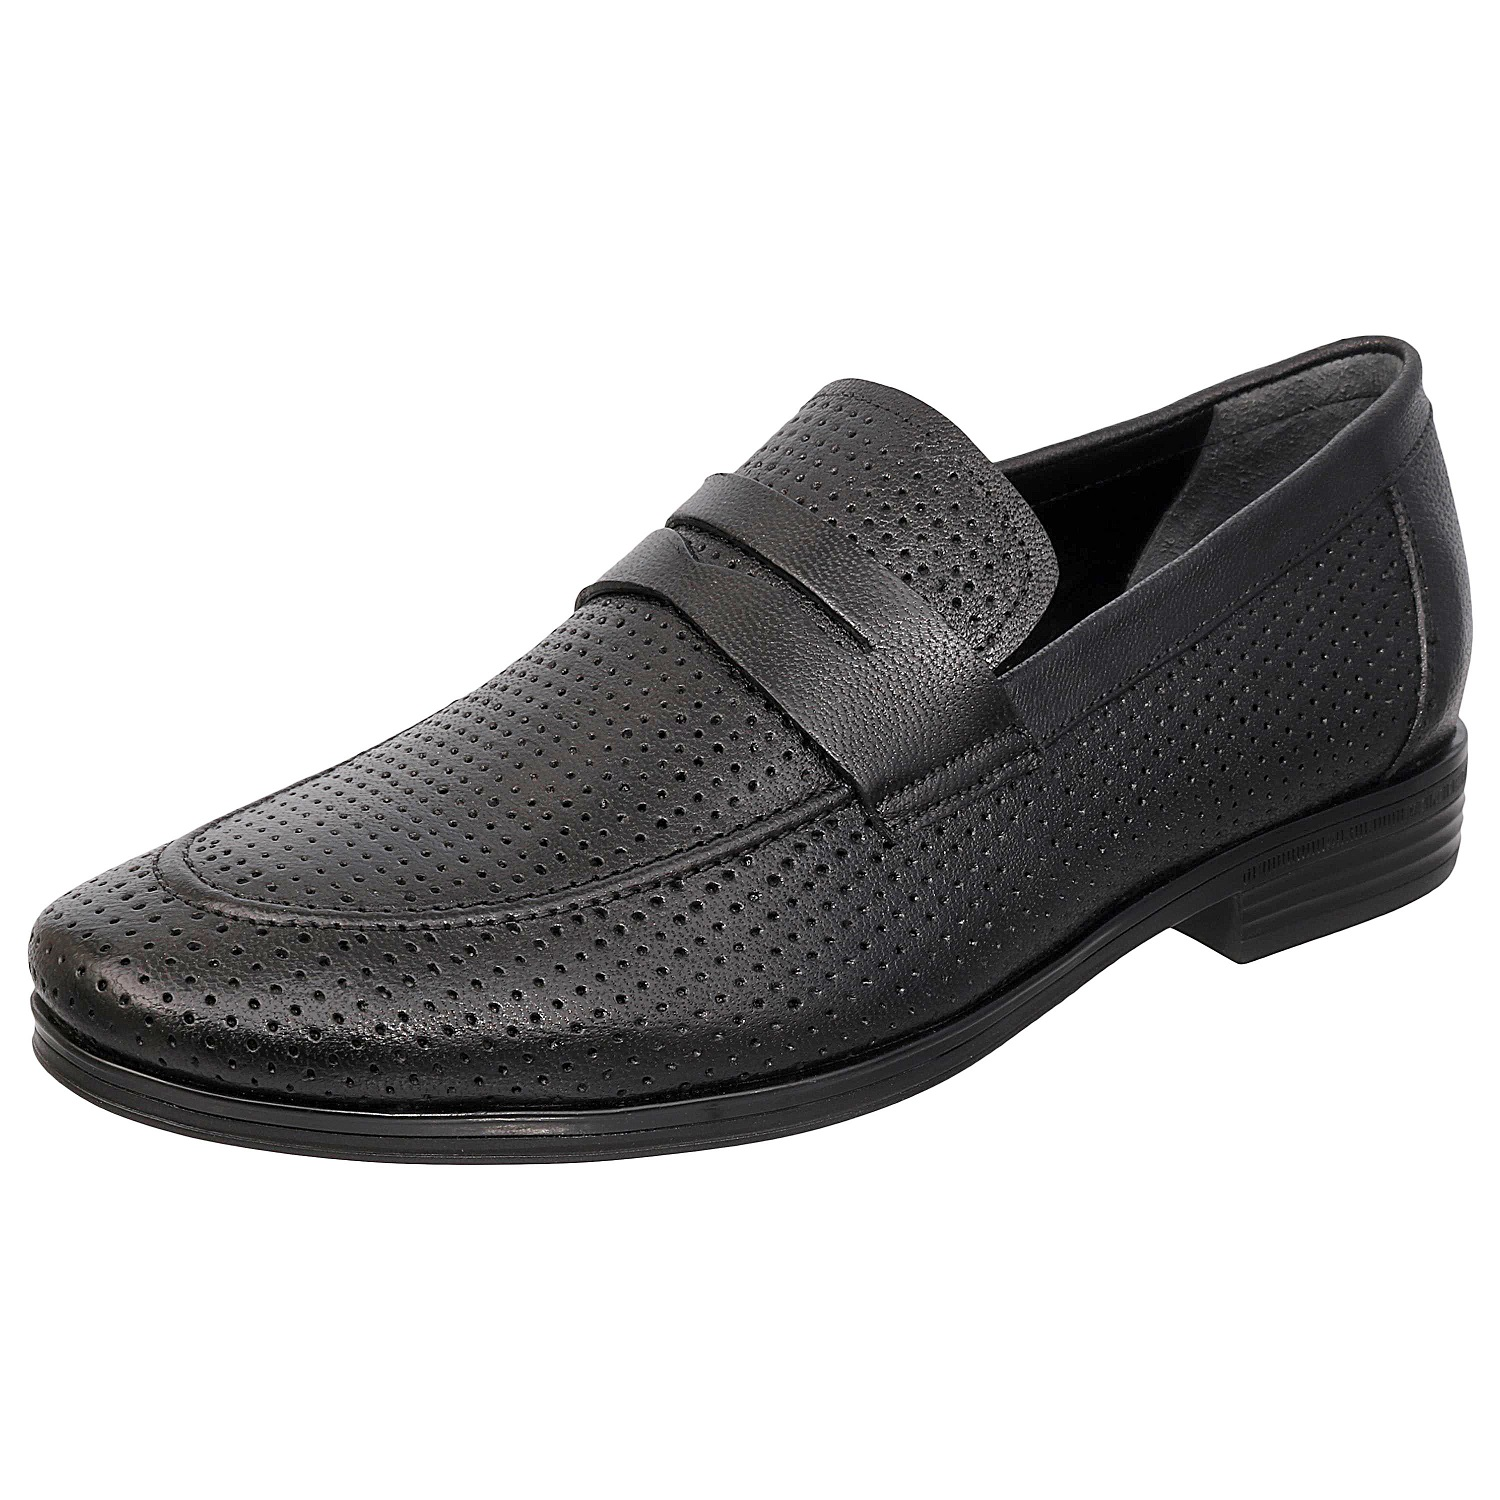 Black Slip-On Semi Formal Shoes